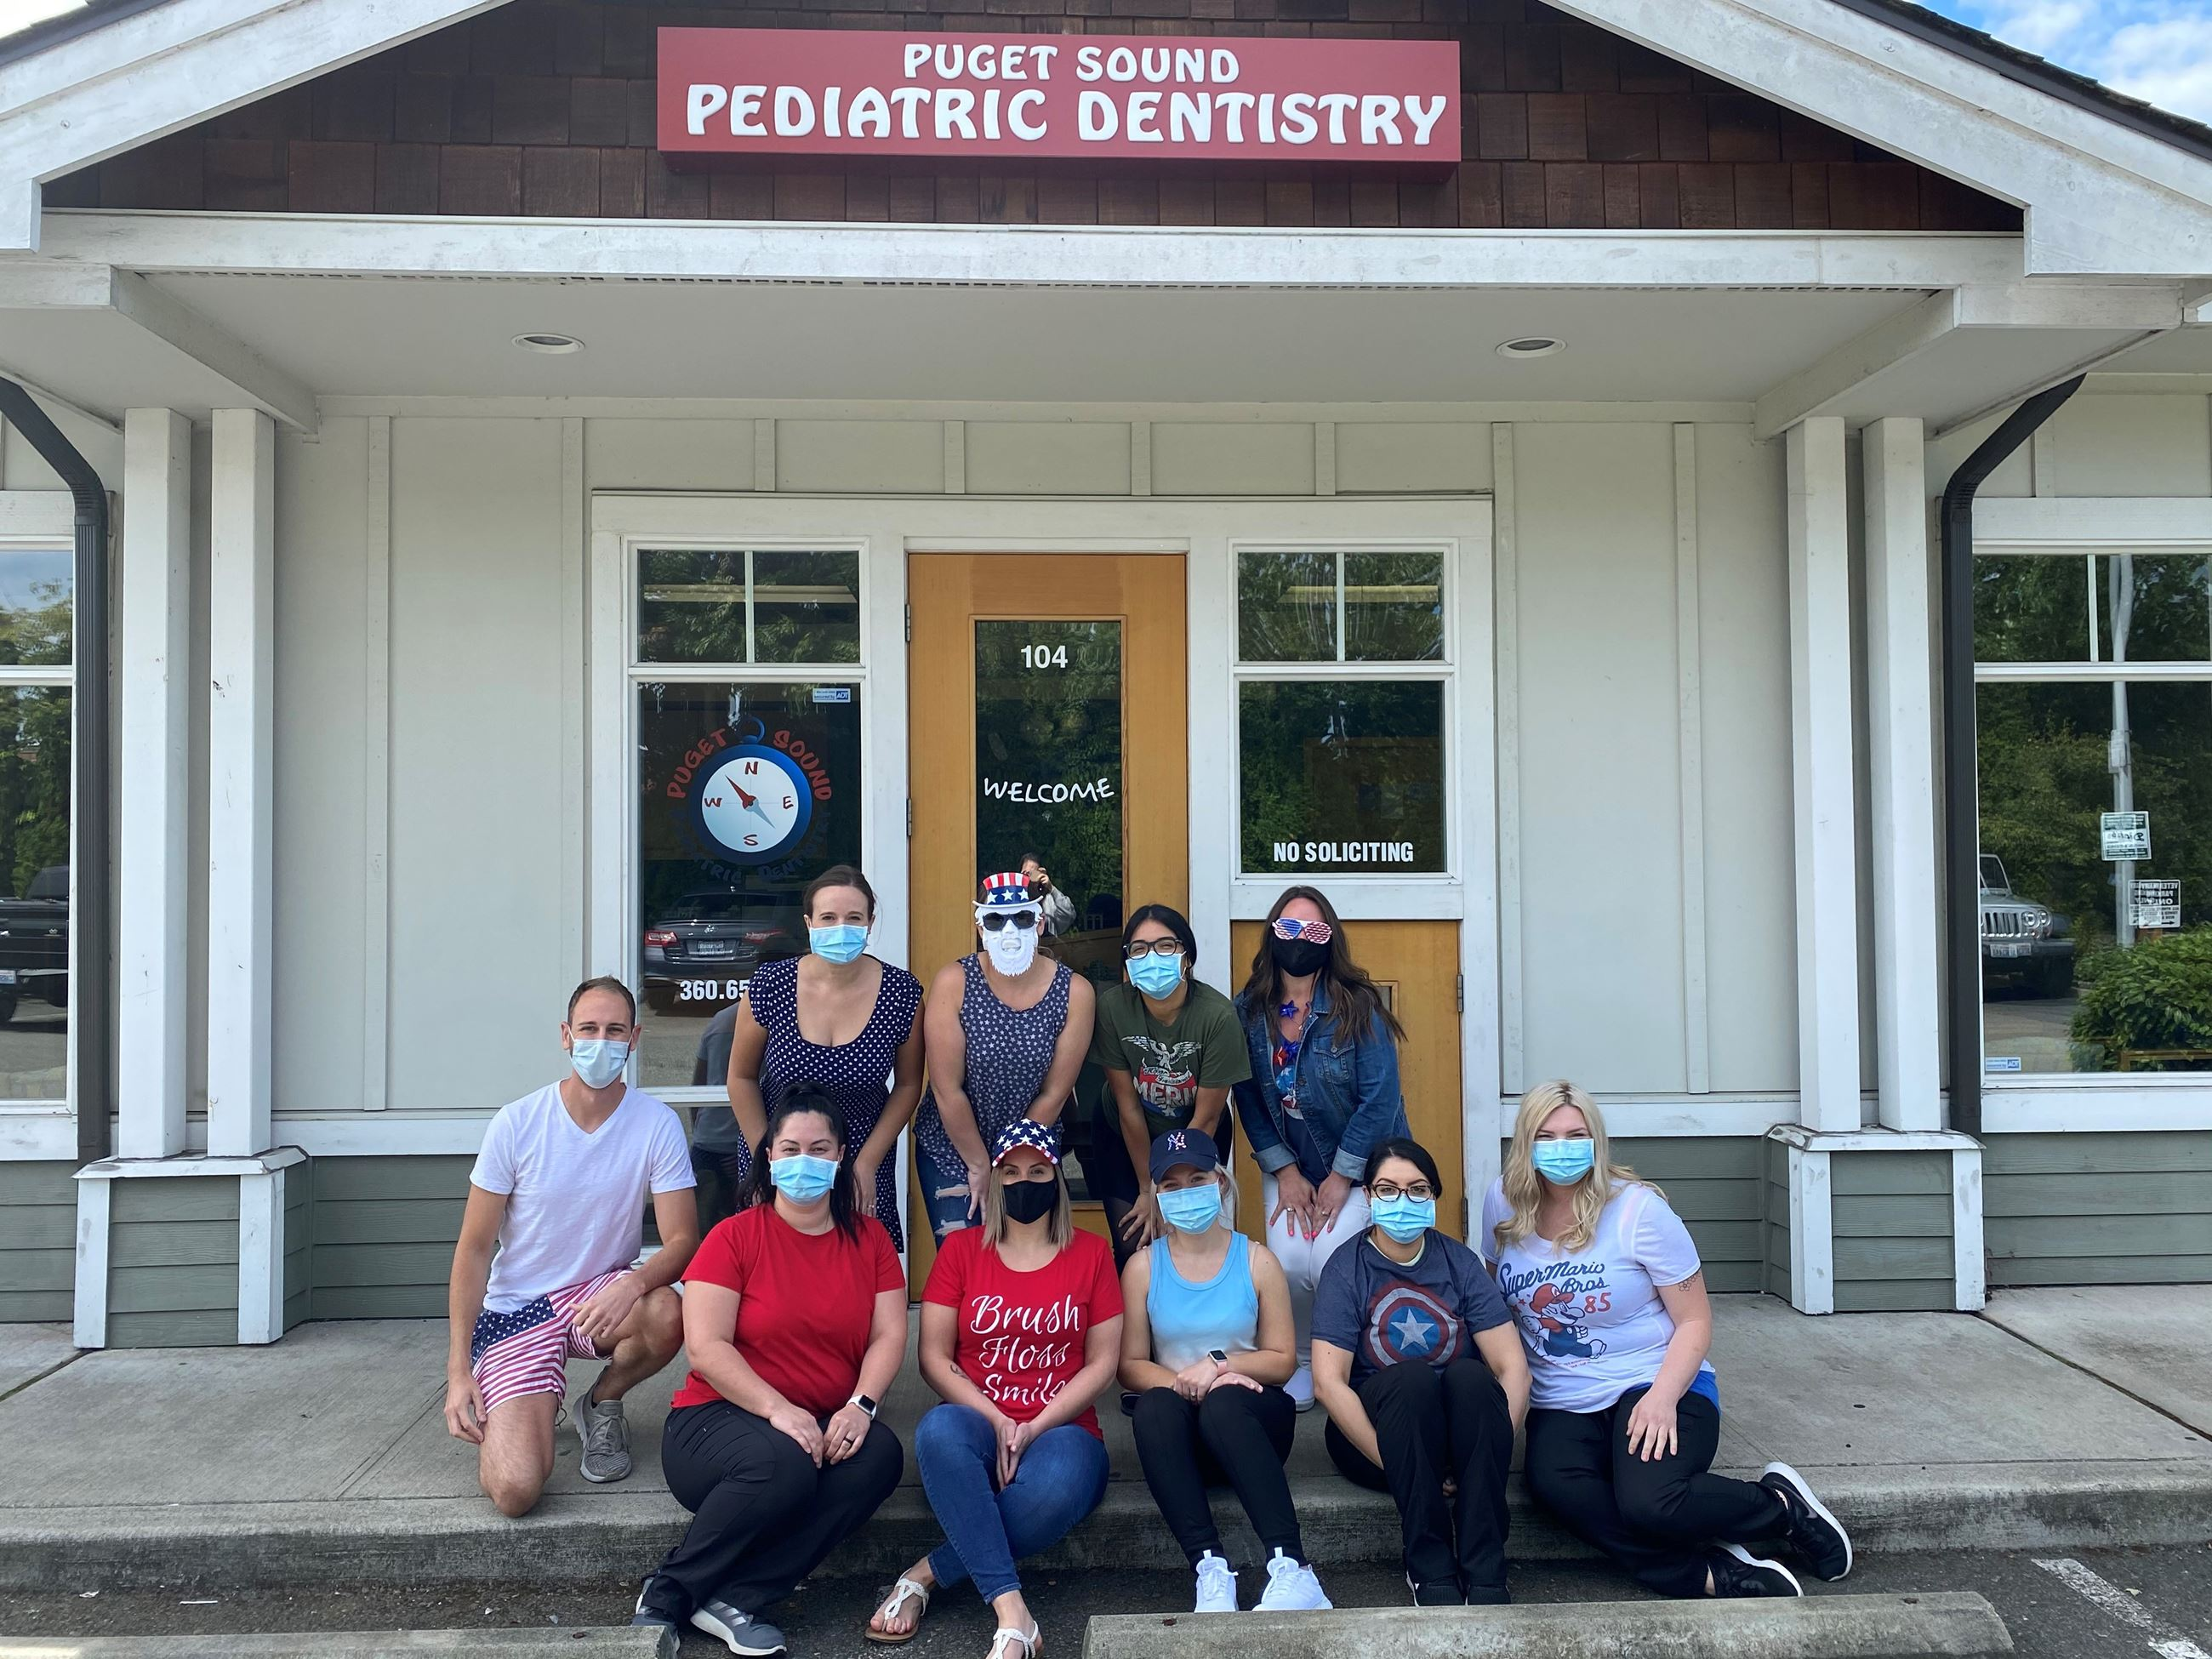 Puget Sound Pediatric Dentistry